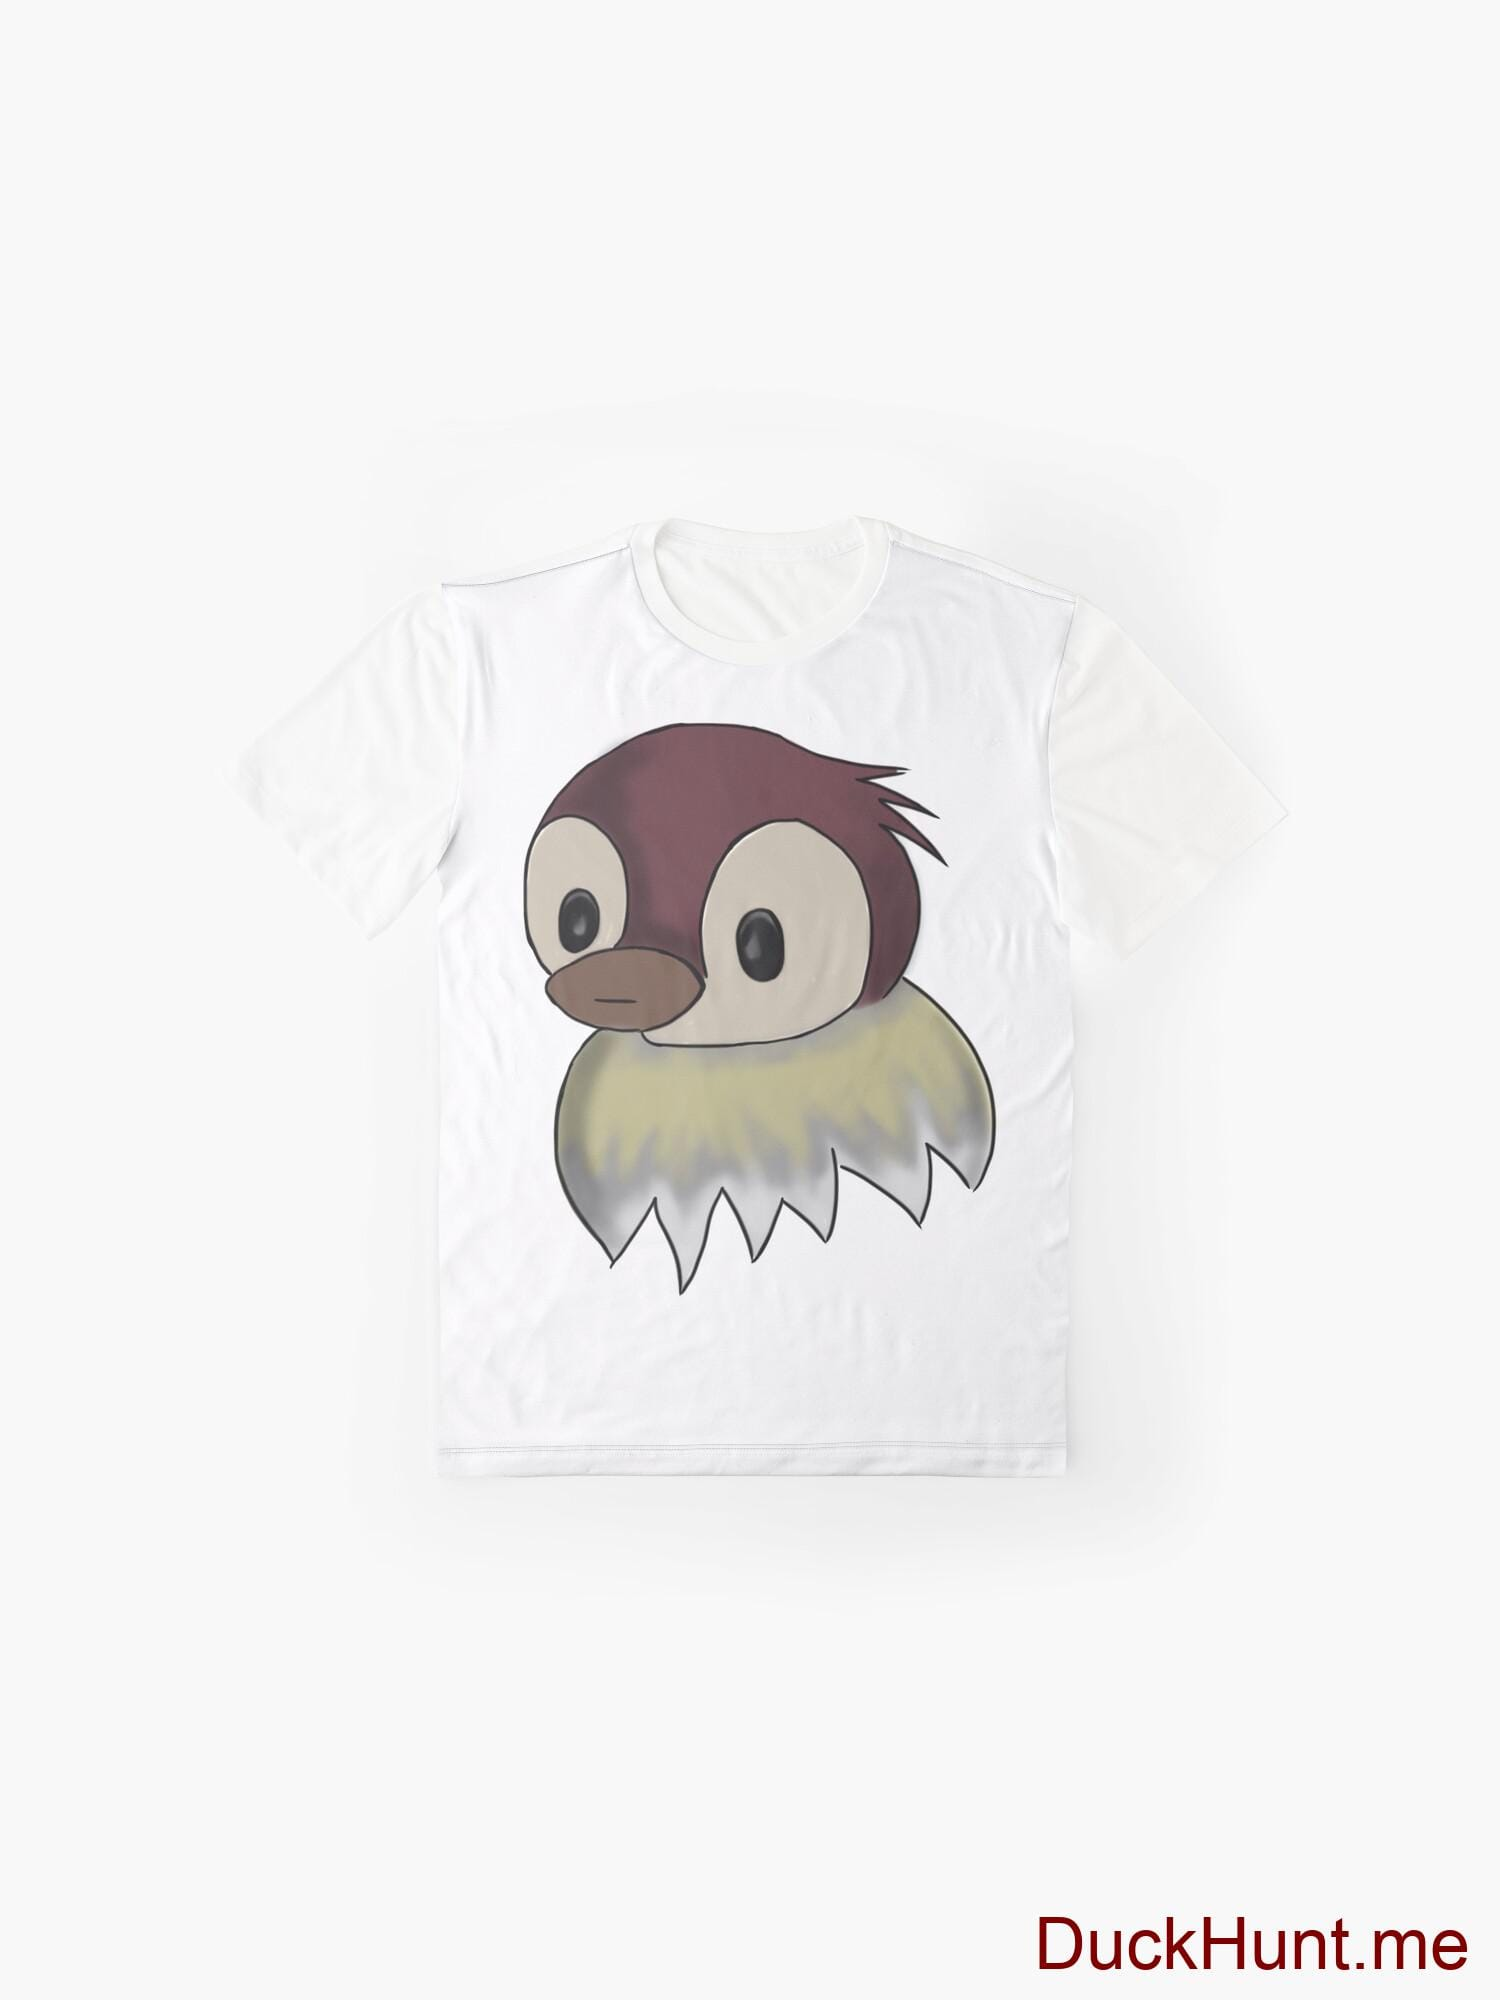 Ghost Duck (fogless) White Graphic T-Shirt alternative image 3